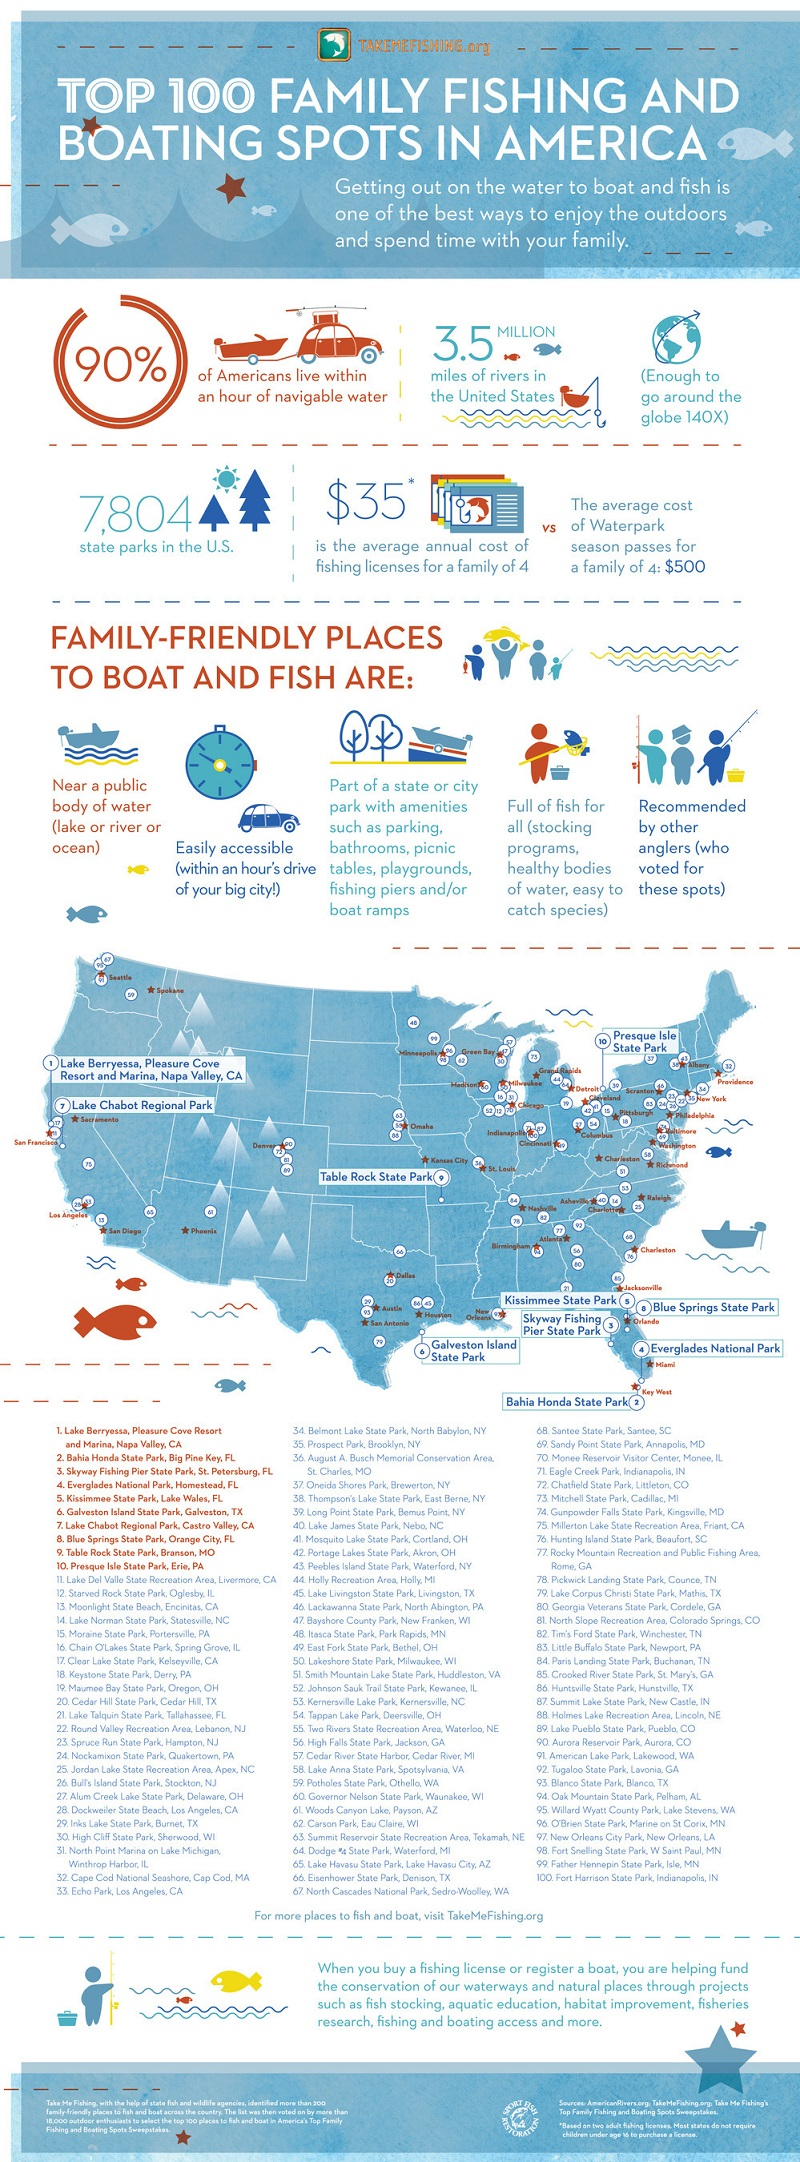 Take me fishing announces america 39 s top 100 family for Best places to fish in the us